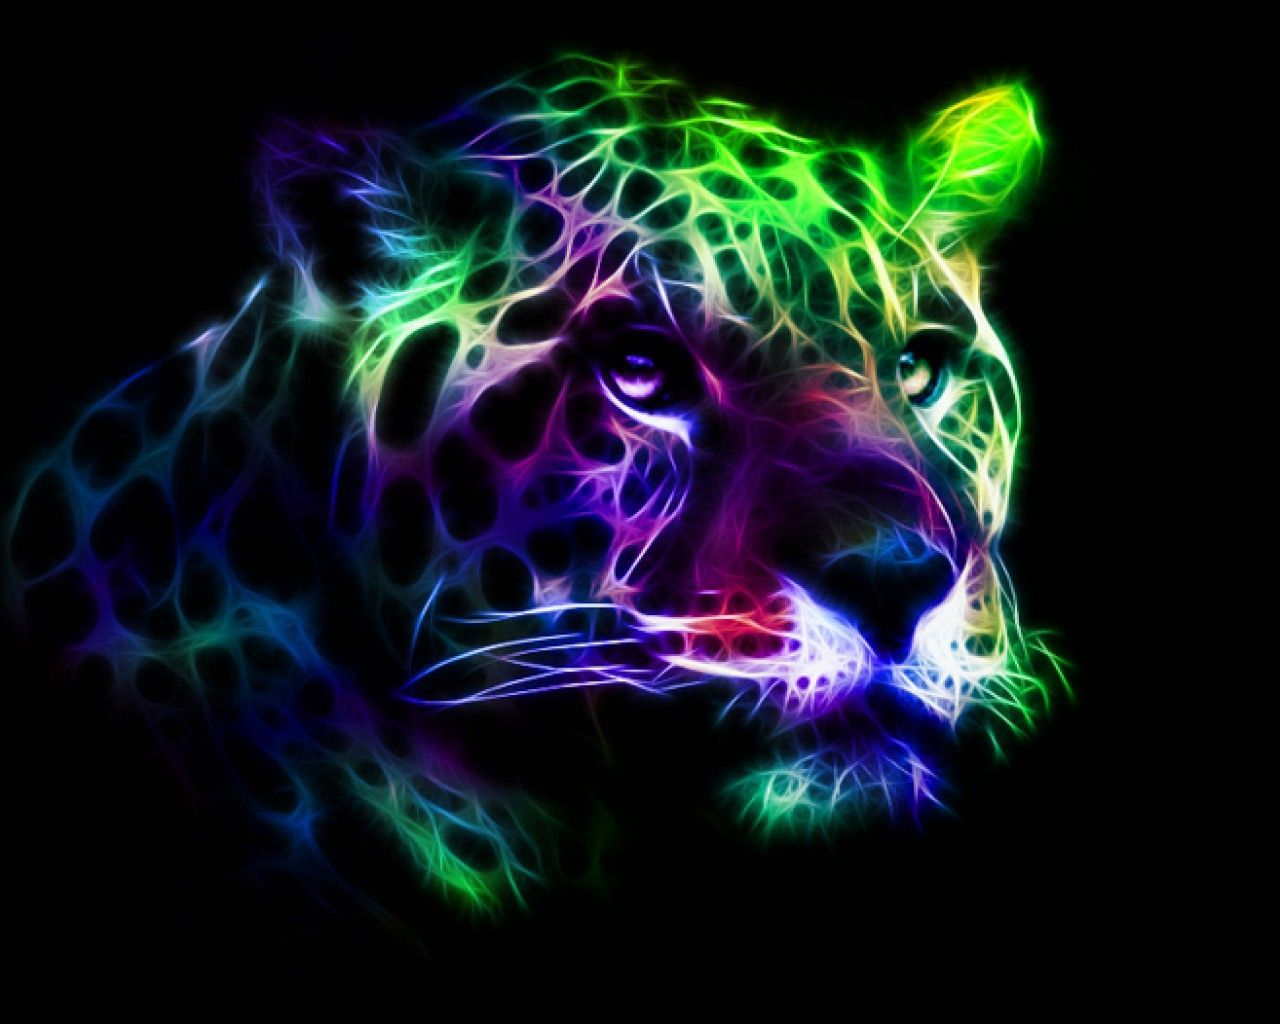 Neon Animal Wallpapers Top Free Neon Animal Backgrounds Wallpaperaccess